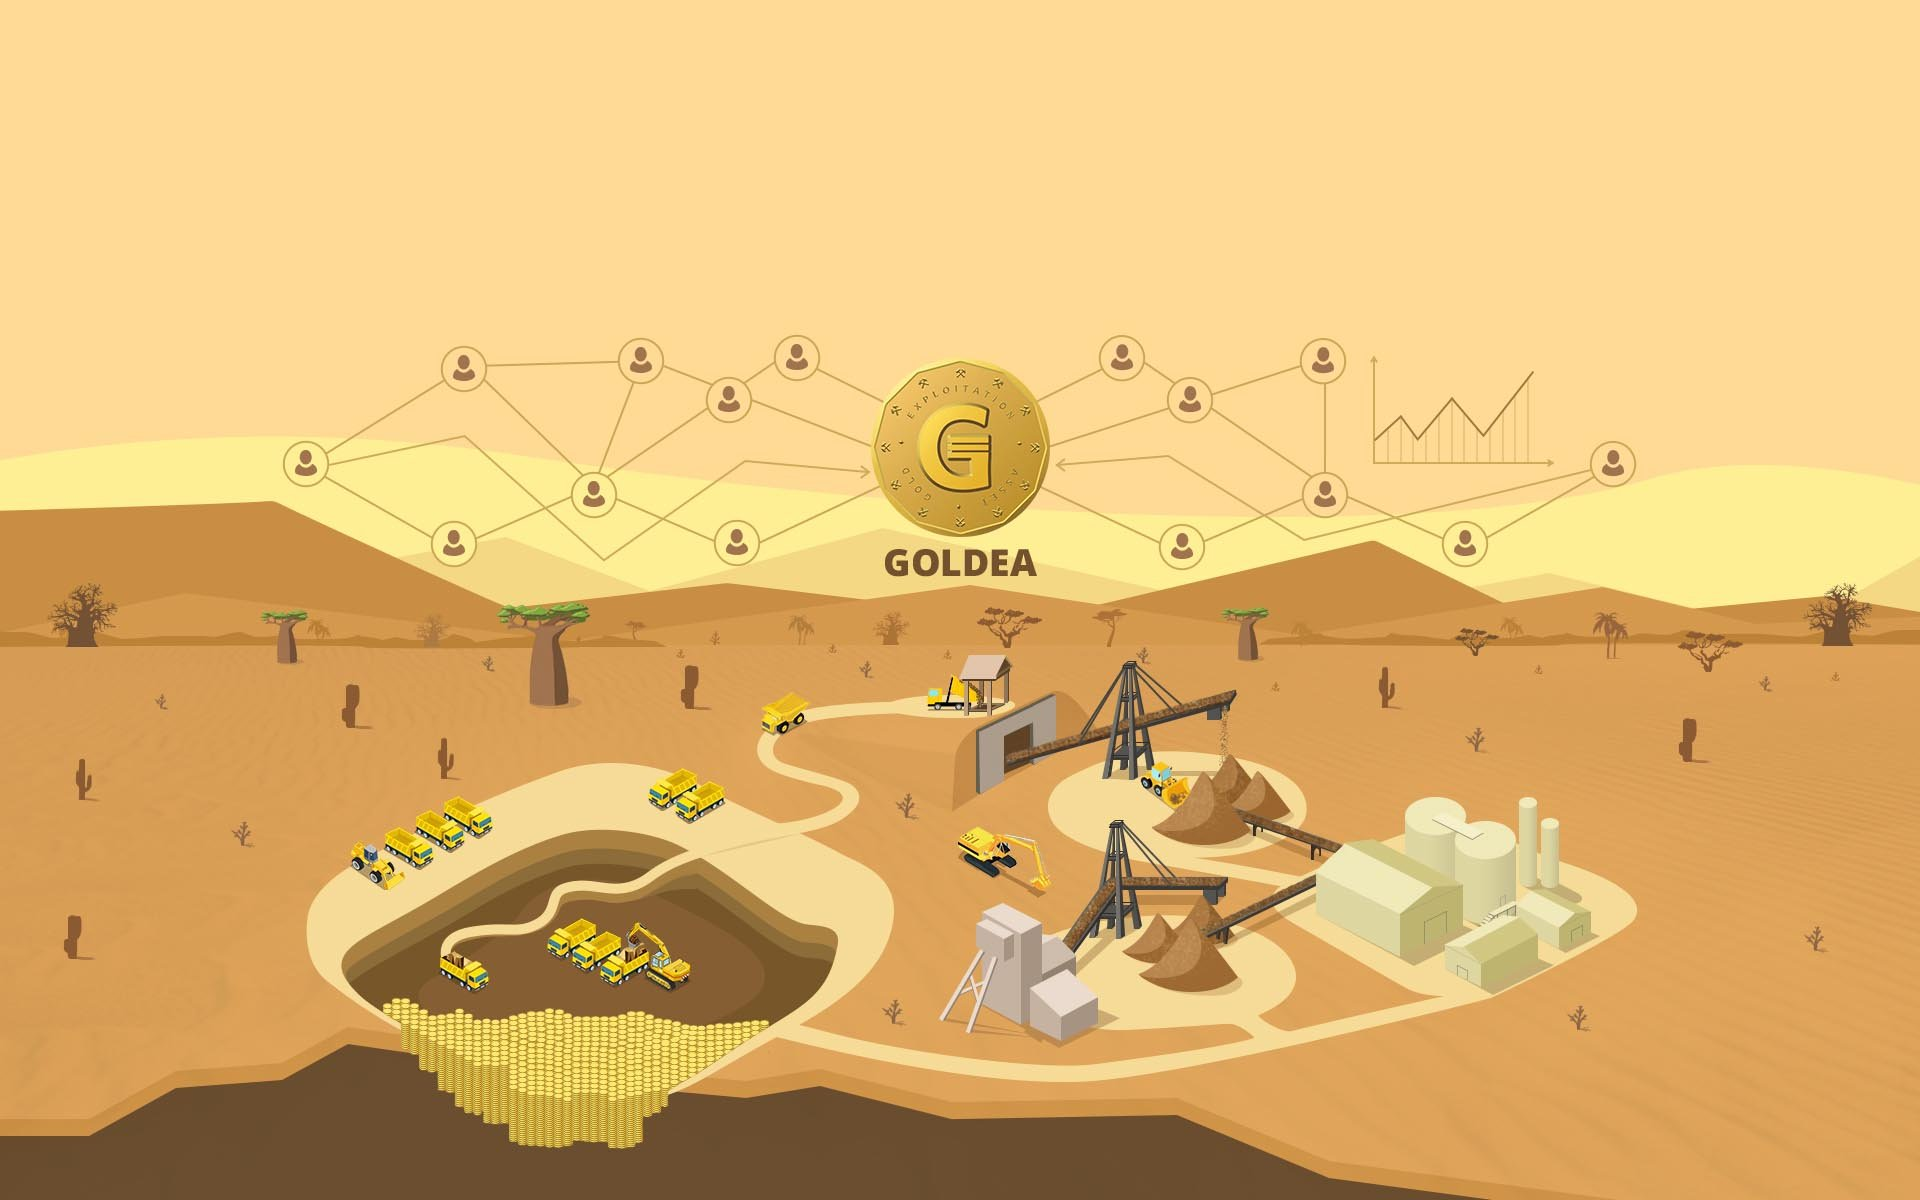 GOLDEA Launches the First Phased ICO on a Progress Basis From the Real Sector